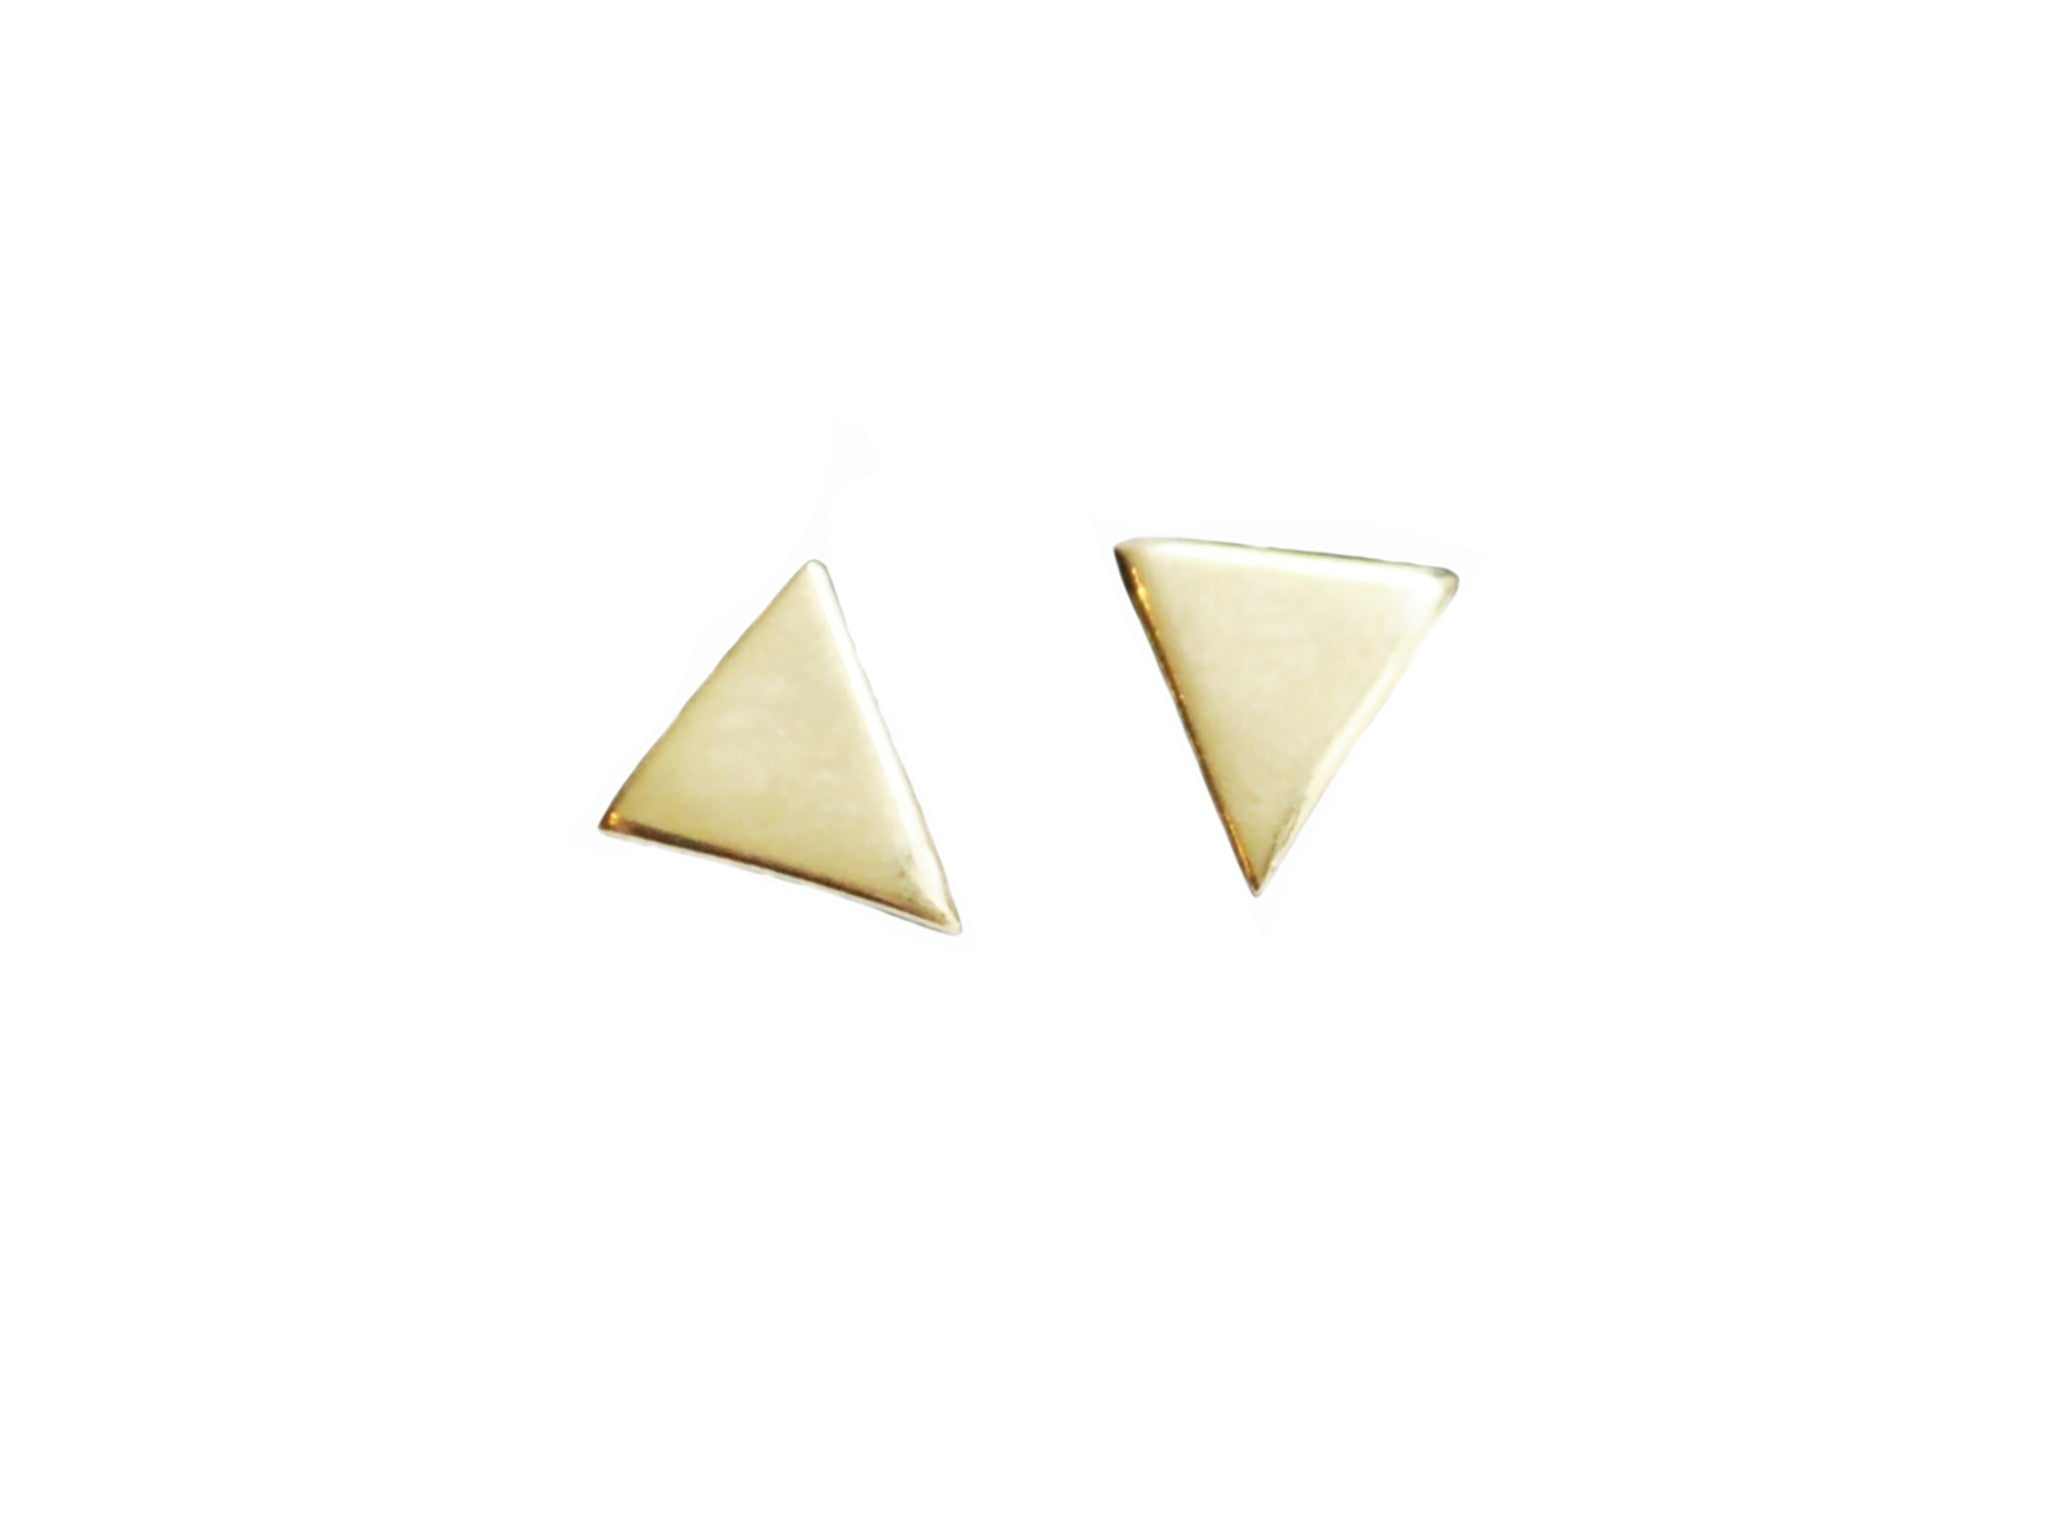 Triangle Shape Stud Earrings Wendy Nichol Fine Jewelry Designer solid 14k Gold Yellow Rose White Sterling Silver Simple delicate Triangle Geometric Studs handmade in NYC New York City everyday First Second Ear Hole Piercing Lower Lobe upper lobe studs